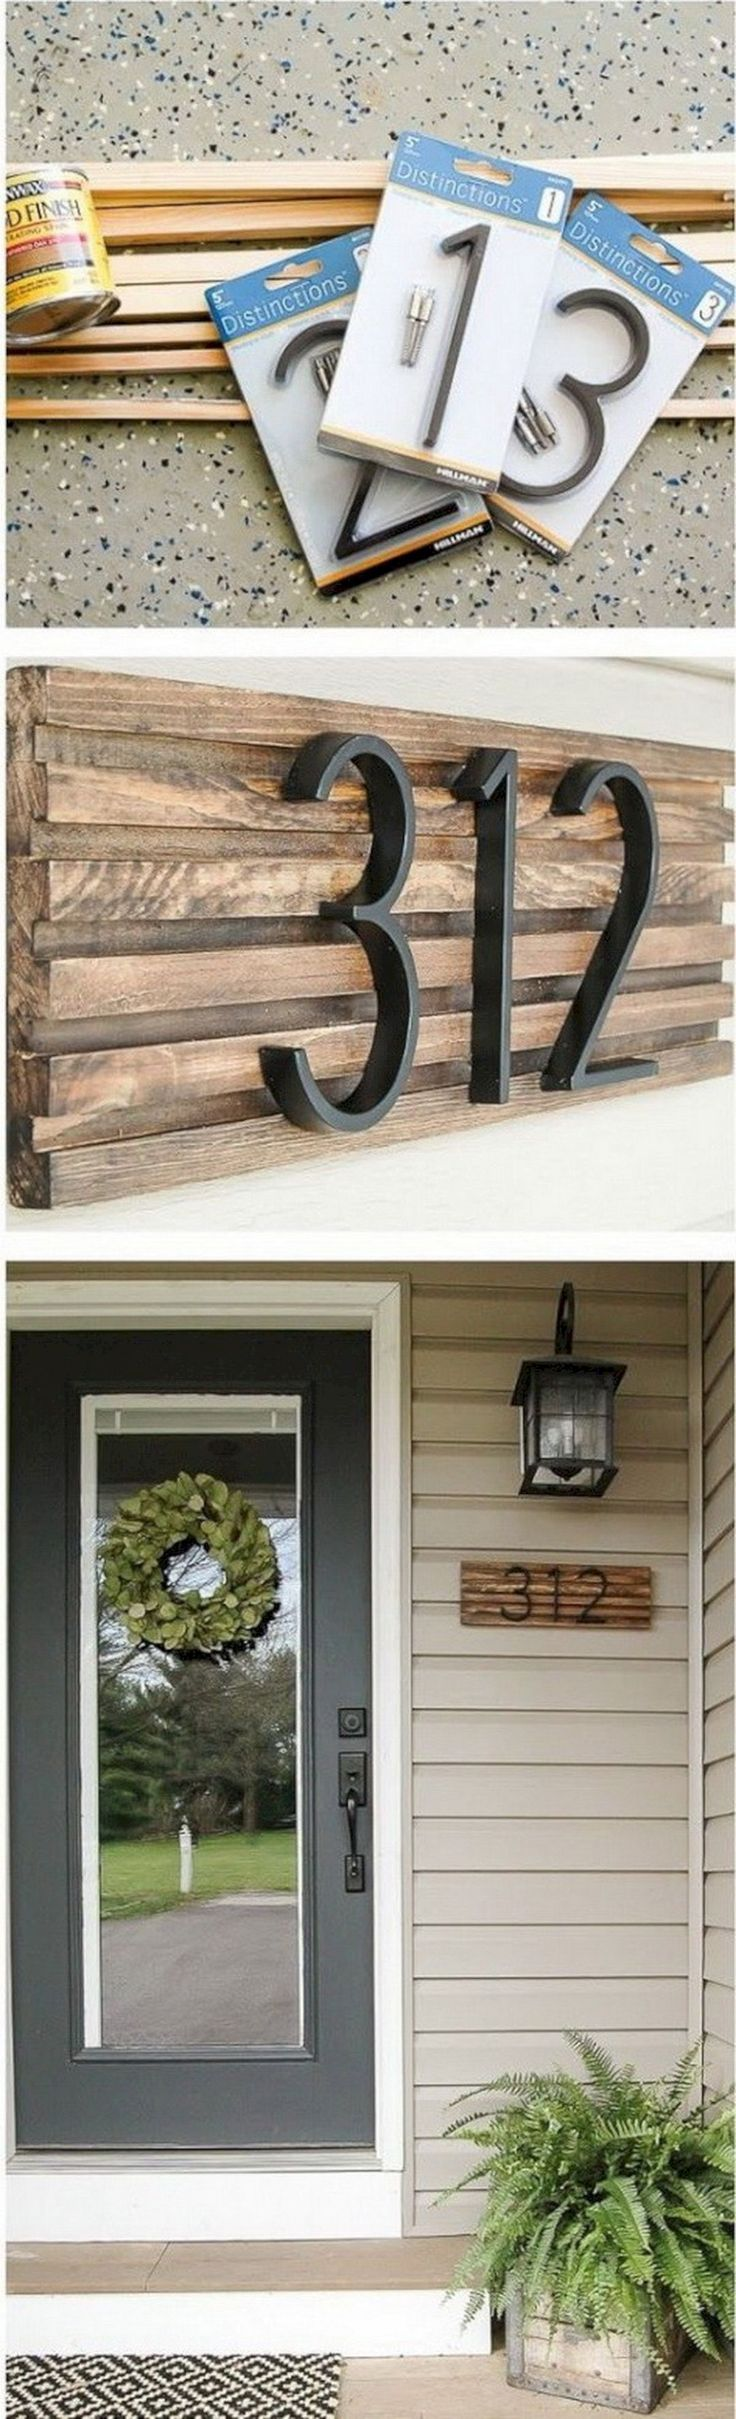 Great Idea Beautiful Farmhouse Home Decor Collections: 75 Best Ideas http://goodsgn.com/design-decorating/beautiful-farmhouse-home-decor-collections-75-best-ideas/